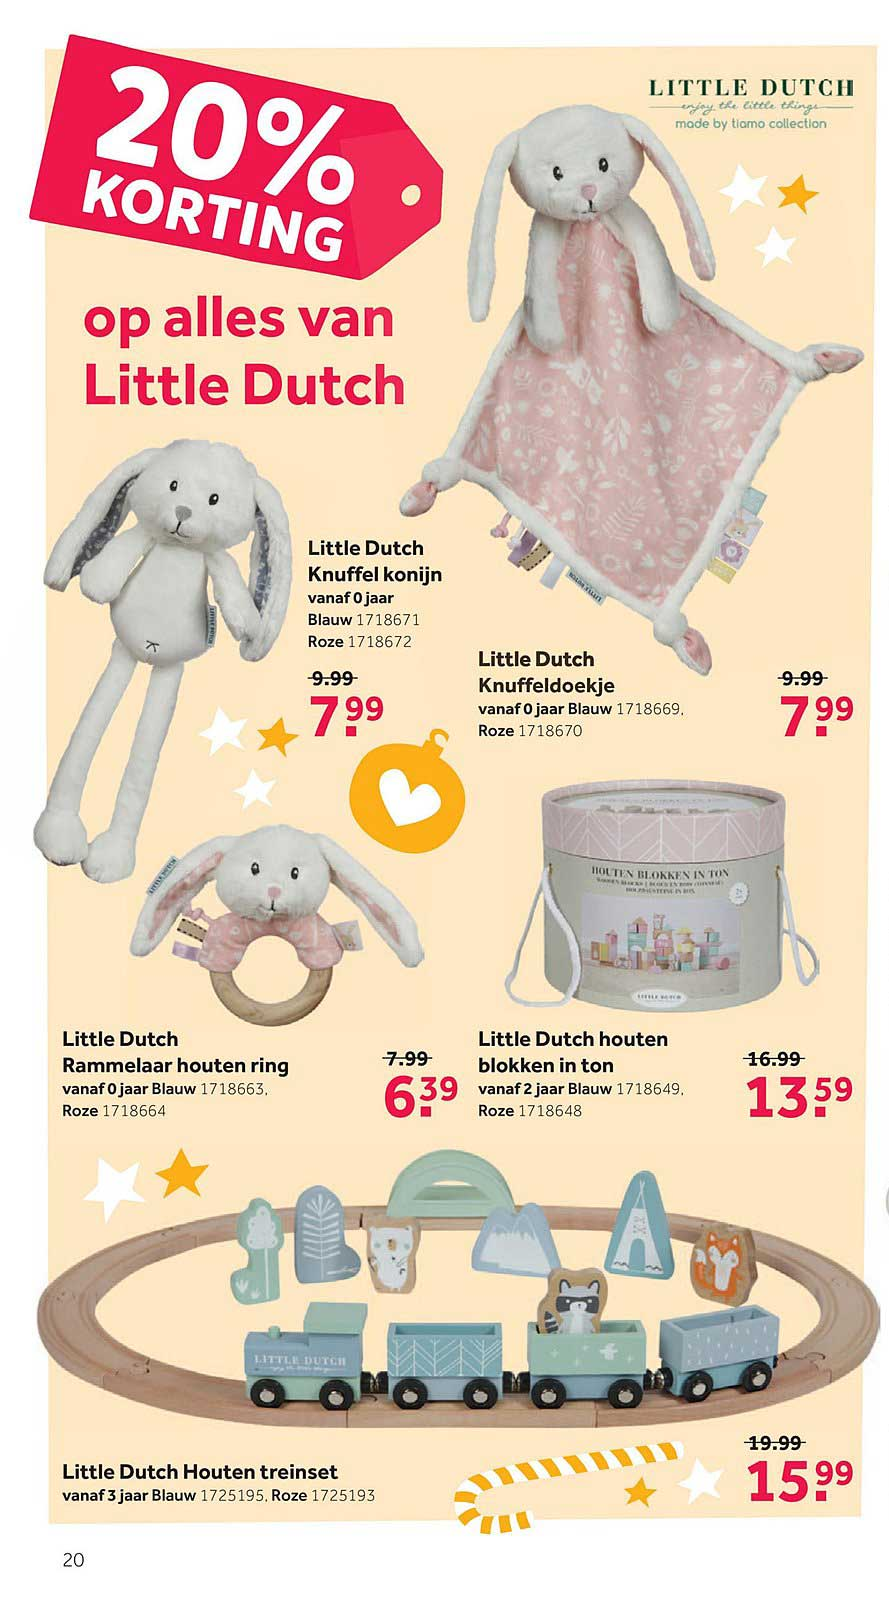 Intertoys 20% Korting Op Alles Van Little Dutch